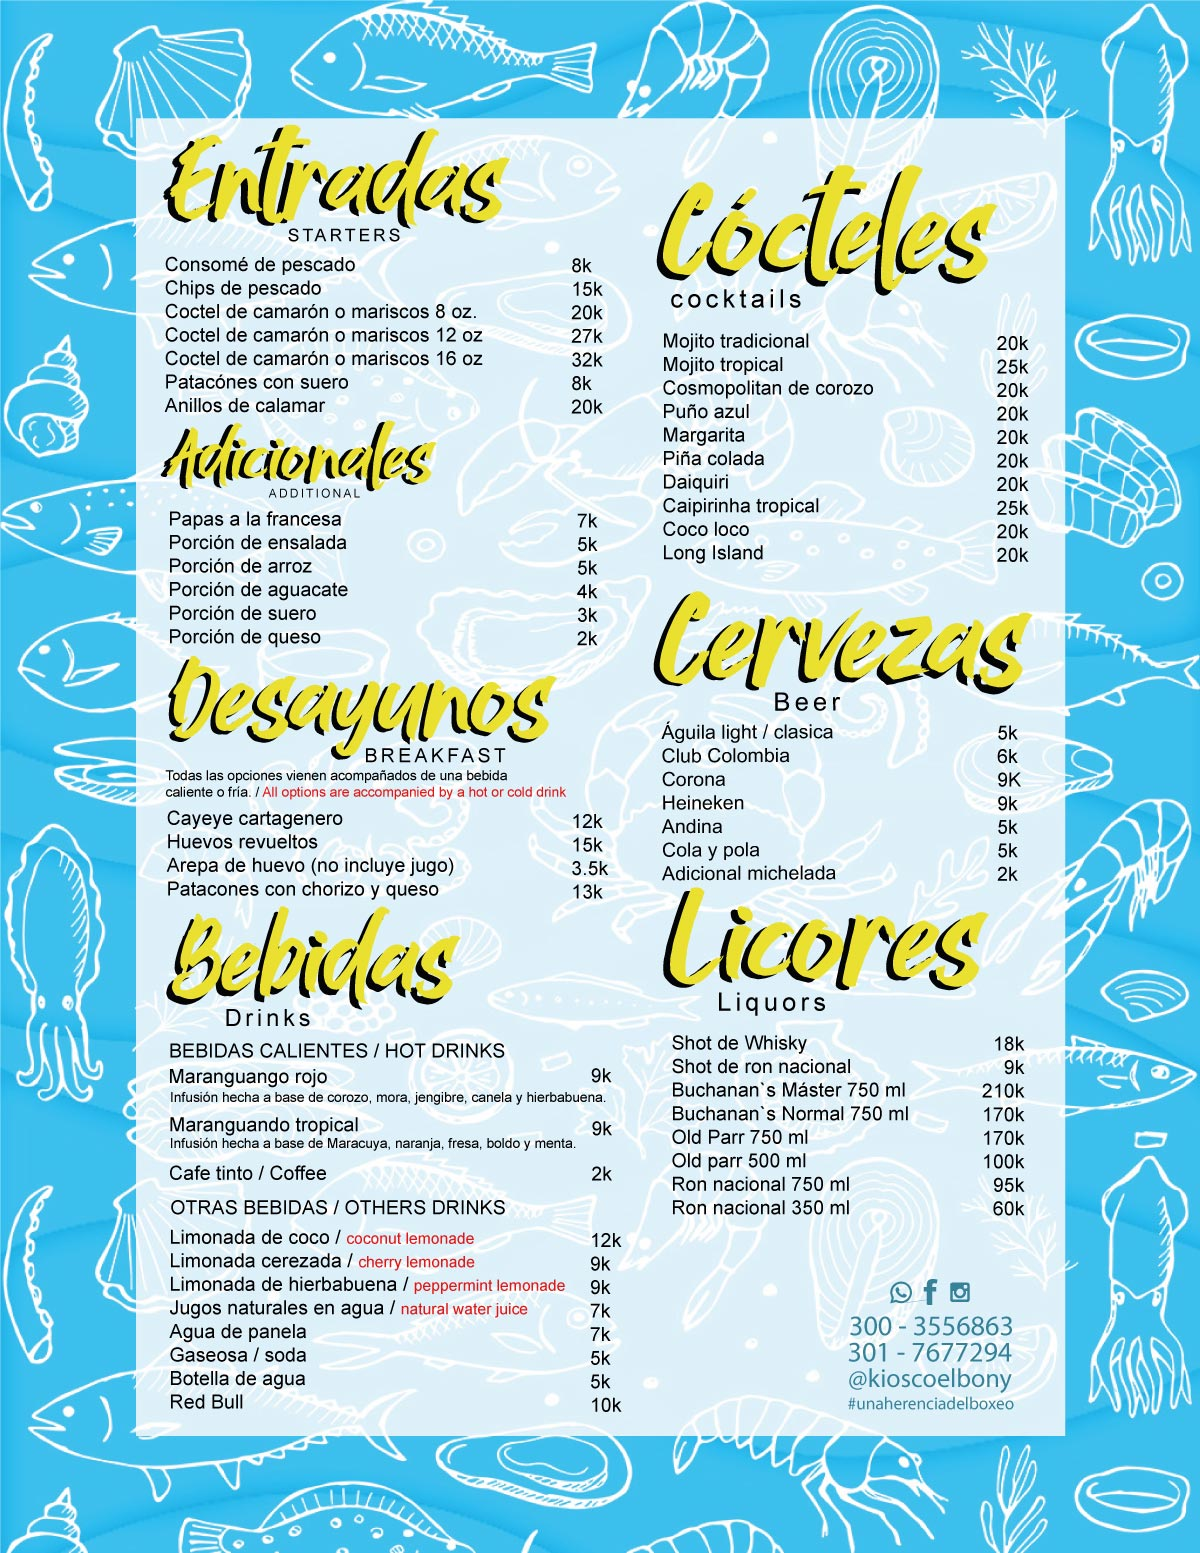 menu kiosco el bony2